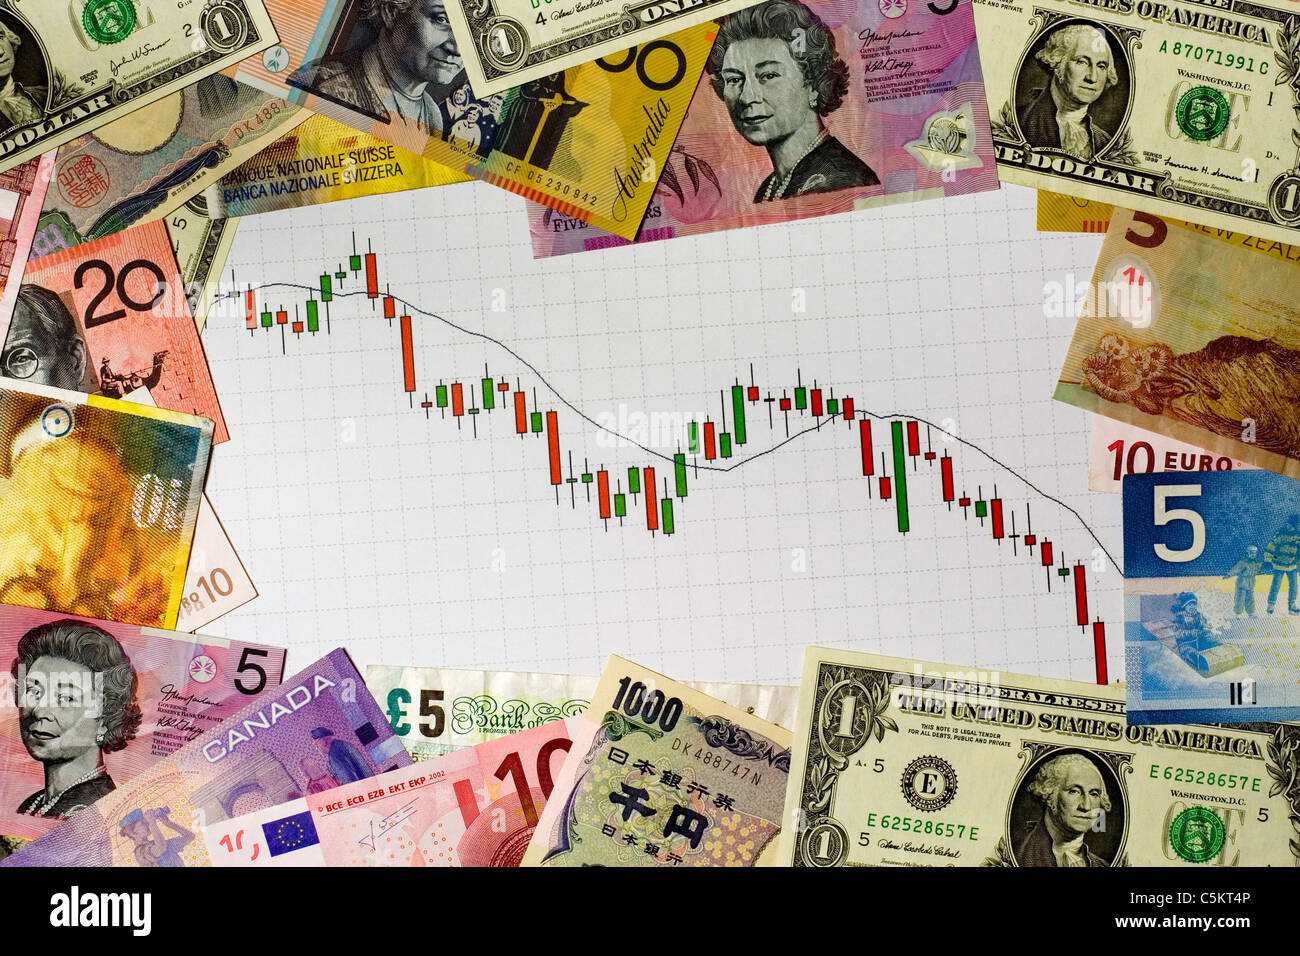 Candlestick chart showing a bear market surrounded by currencies of various countries - Stock Image